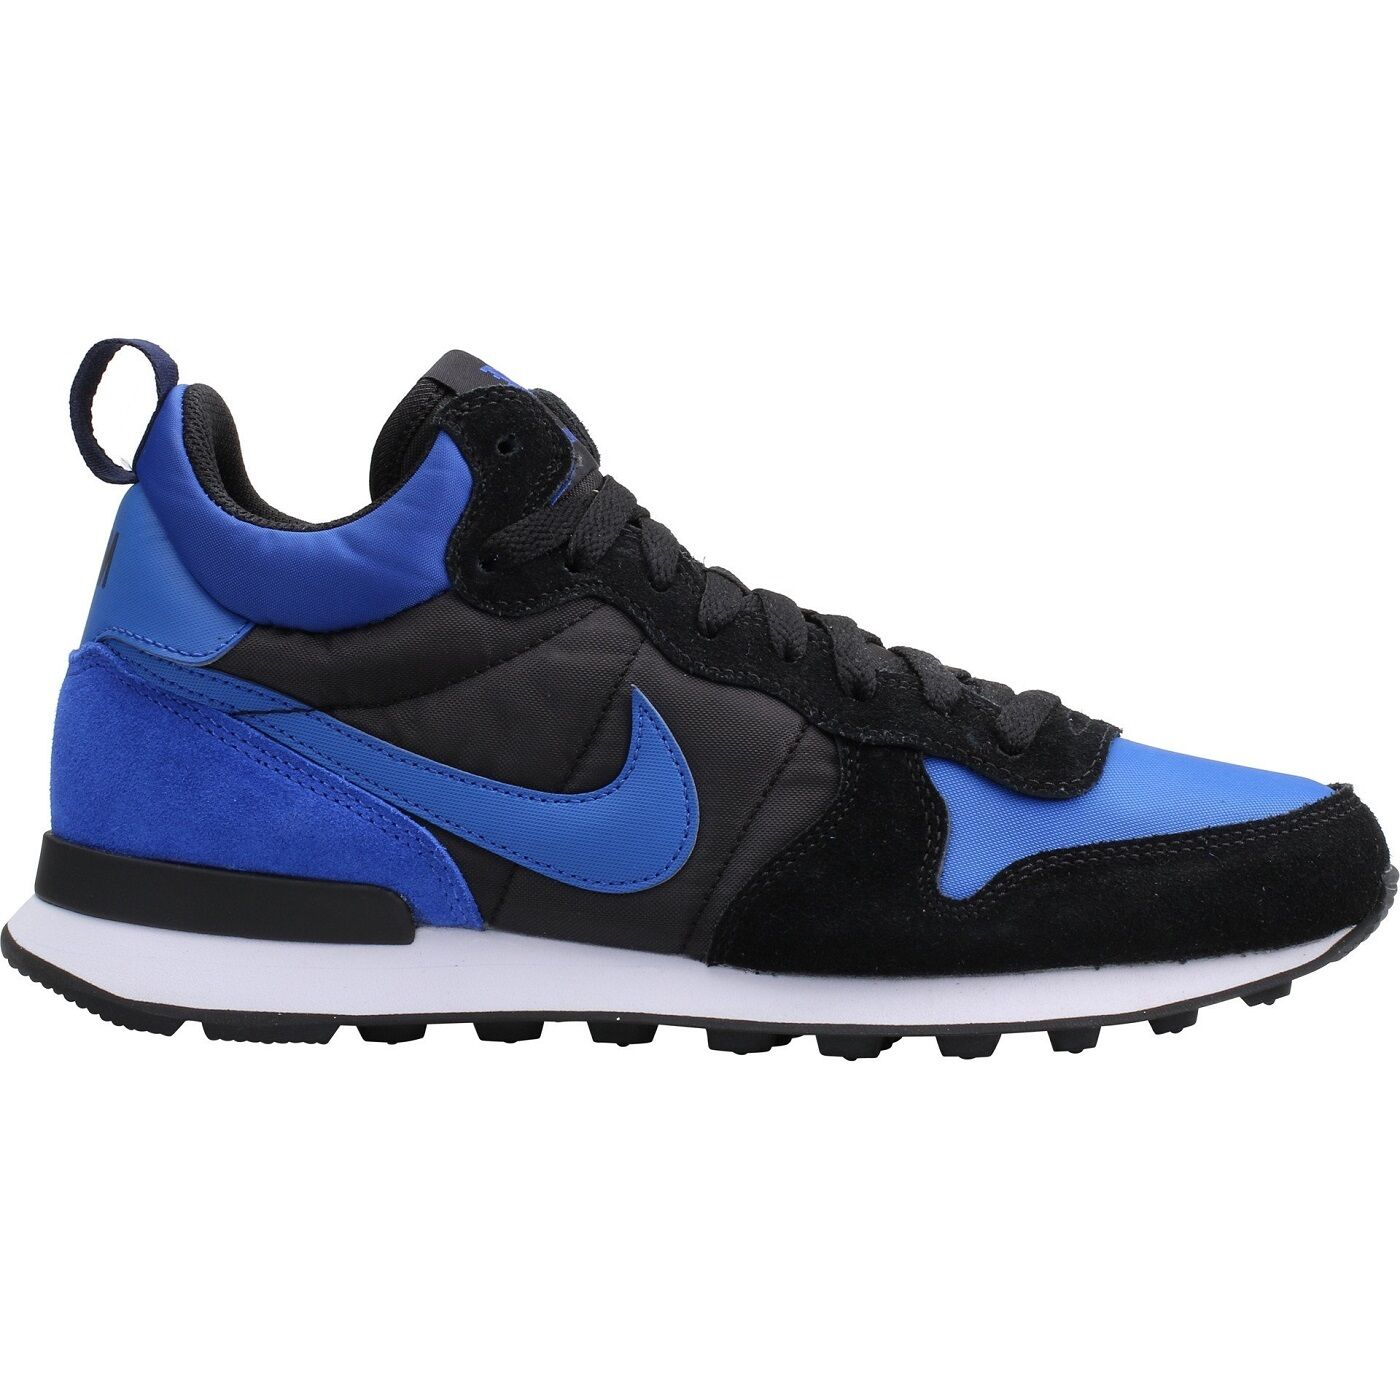 d6641599ab6e Nike Internationalist Mid Mens 682844-404 Royal Black Black Black Running  Shoes Size 8.5 02fde4